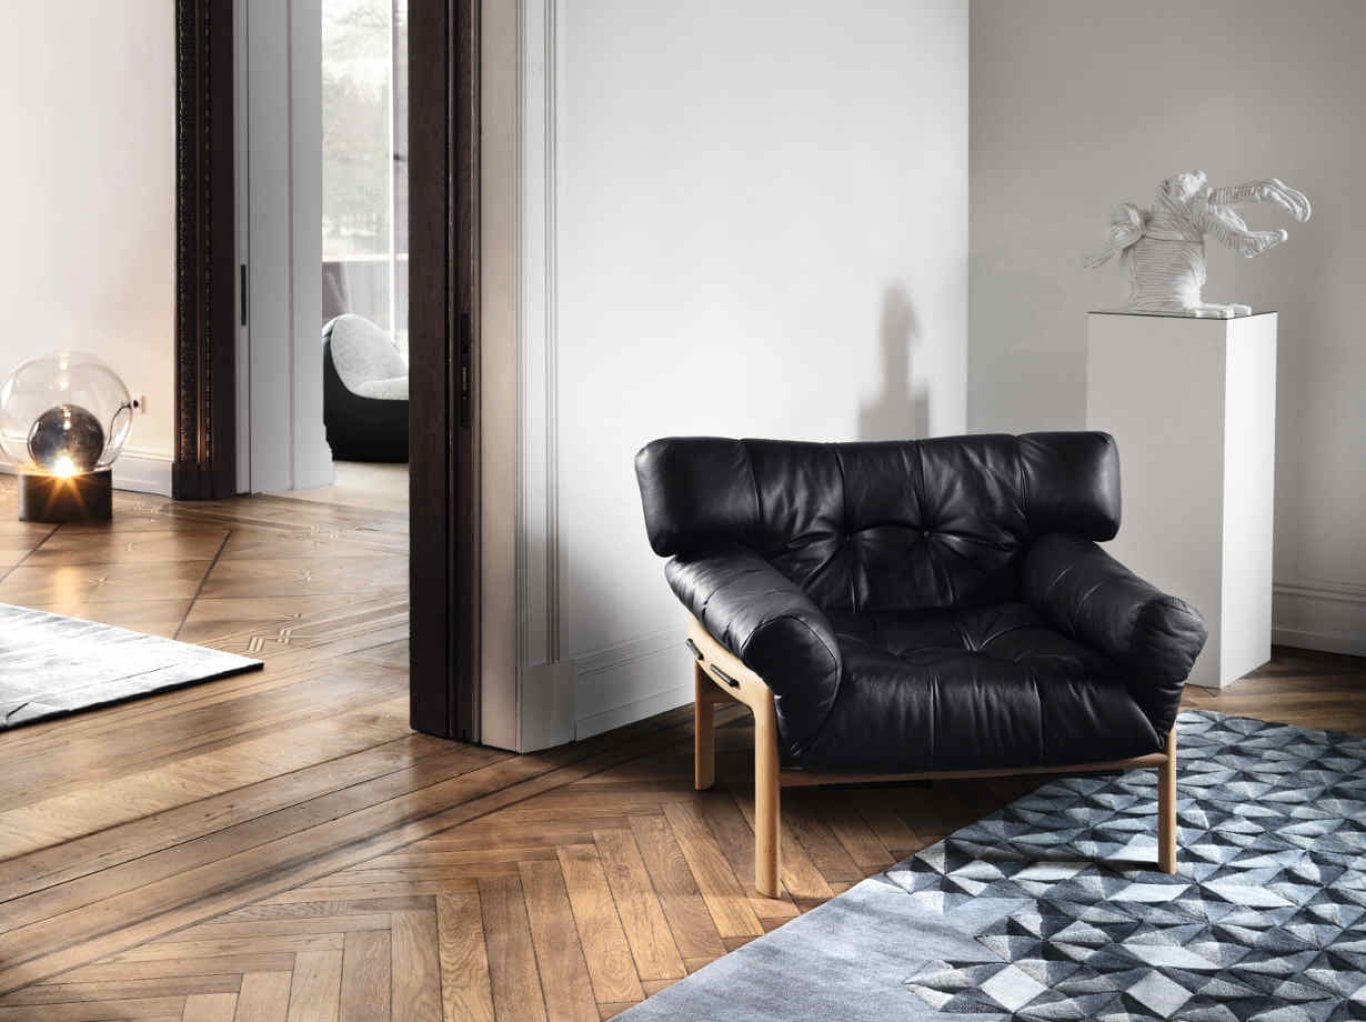 R_Interieur_Nephele_black_1320x920